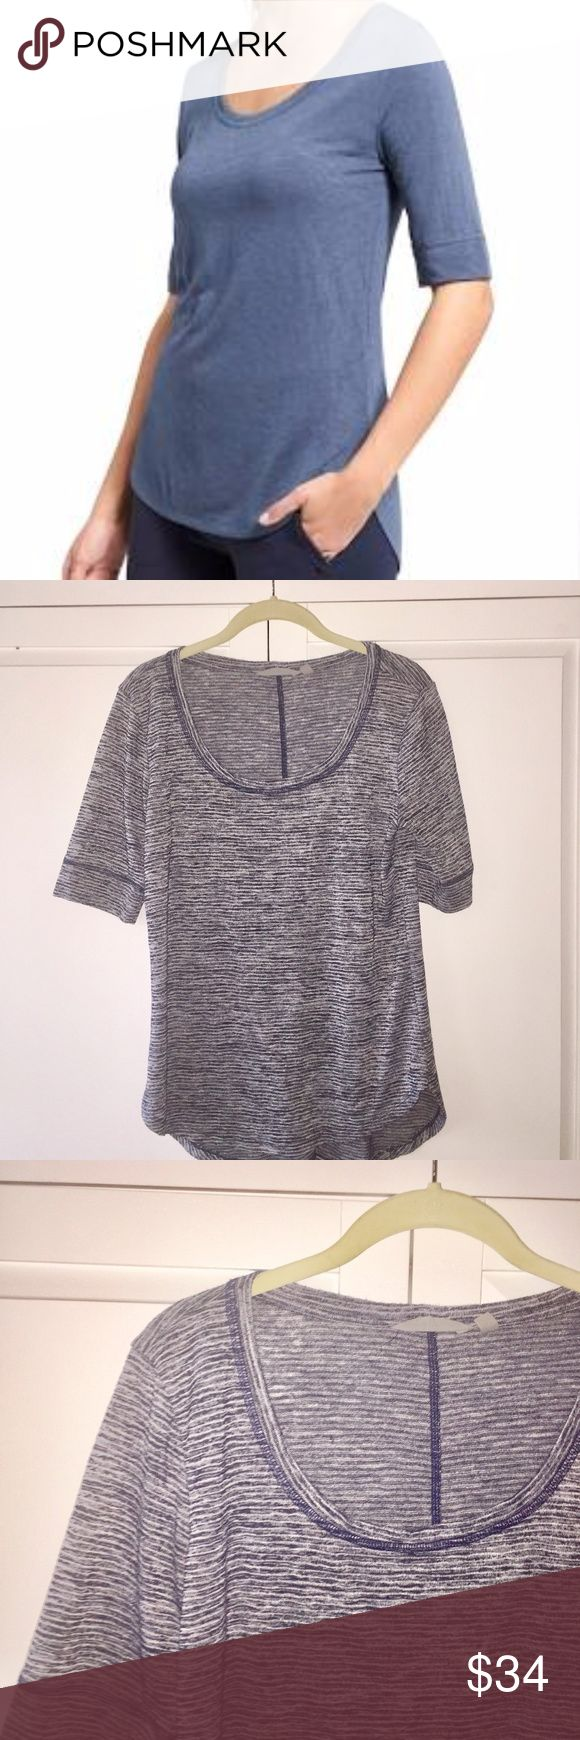 Athleta Breezy T Navy/White Stripe M Soft, breathable and easy care, this jersey tee has the perfect texture and drape Curved hem is longer in back for extra coverage Scoop neck front, center back seam lends a slimming effect BREATHABLE. Sweat can travel through the fabric so it can evaporate on the surface EASY CARE. Just throw in the wash and dry without a second thought IT FEELS: Lightweight, super soft, textured like linen, live-in comfortable Machine wash and dry. Navy Stripe. Athleta…